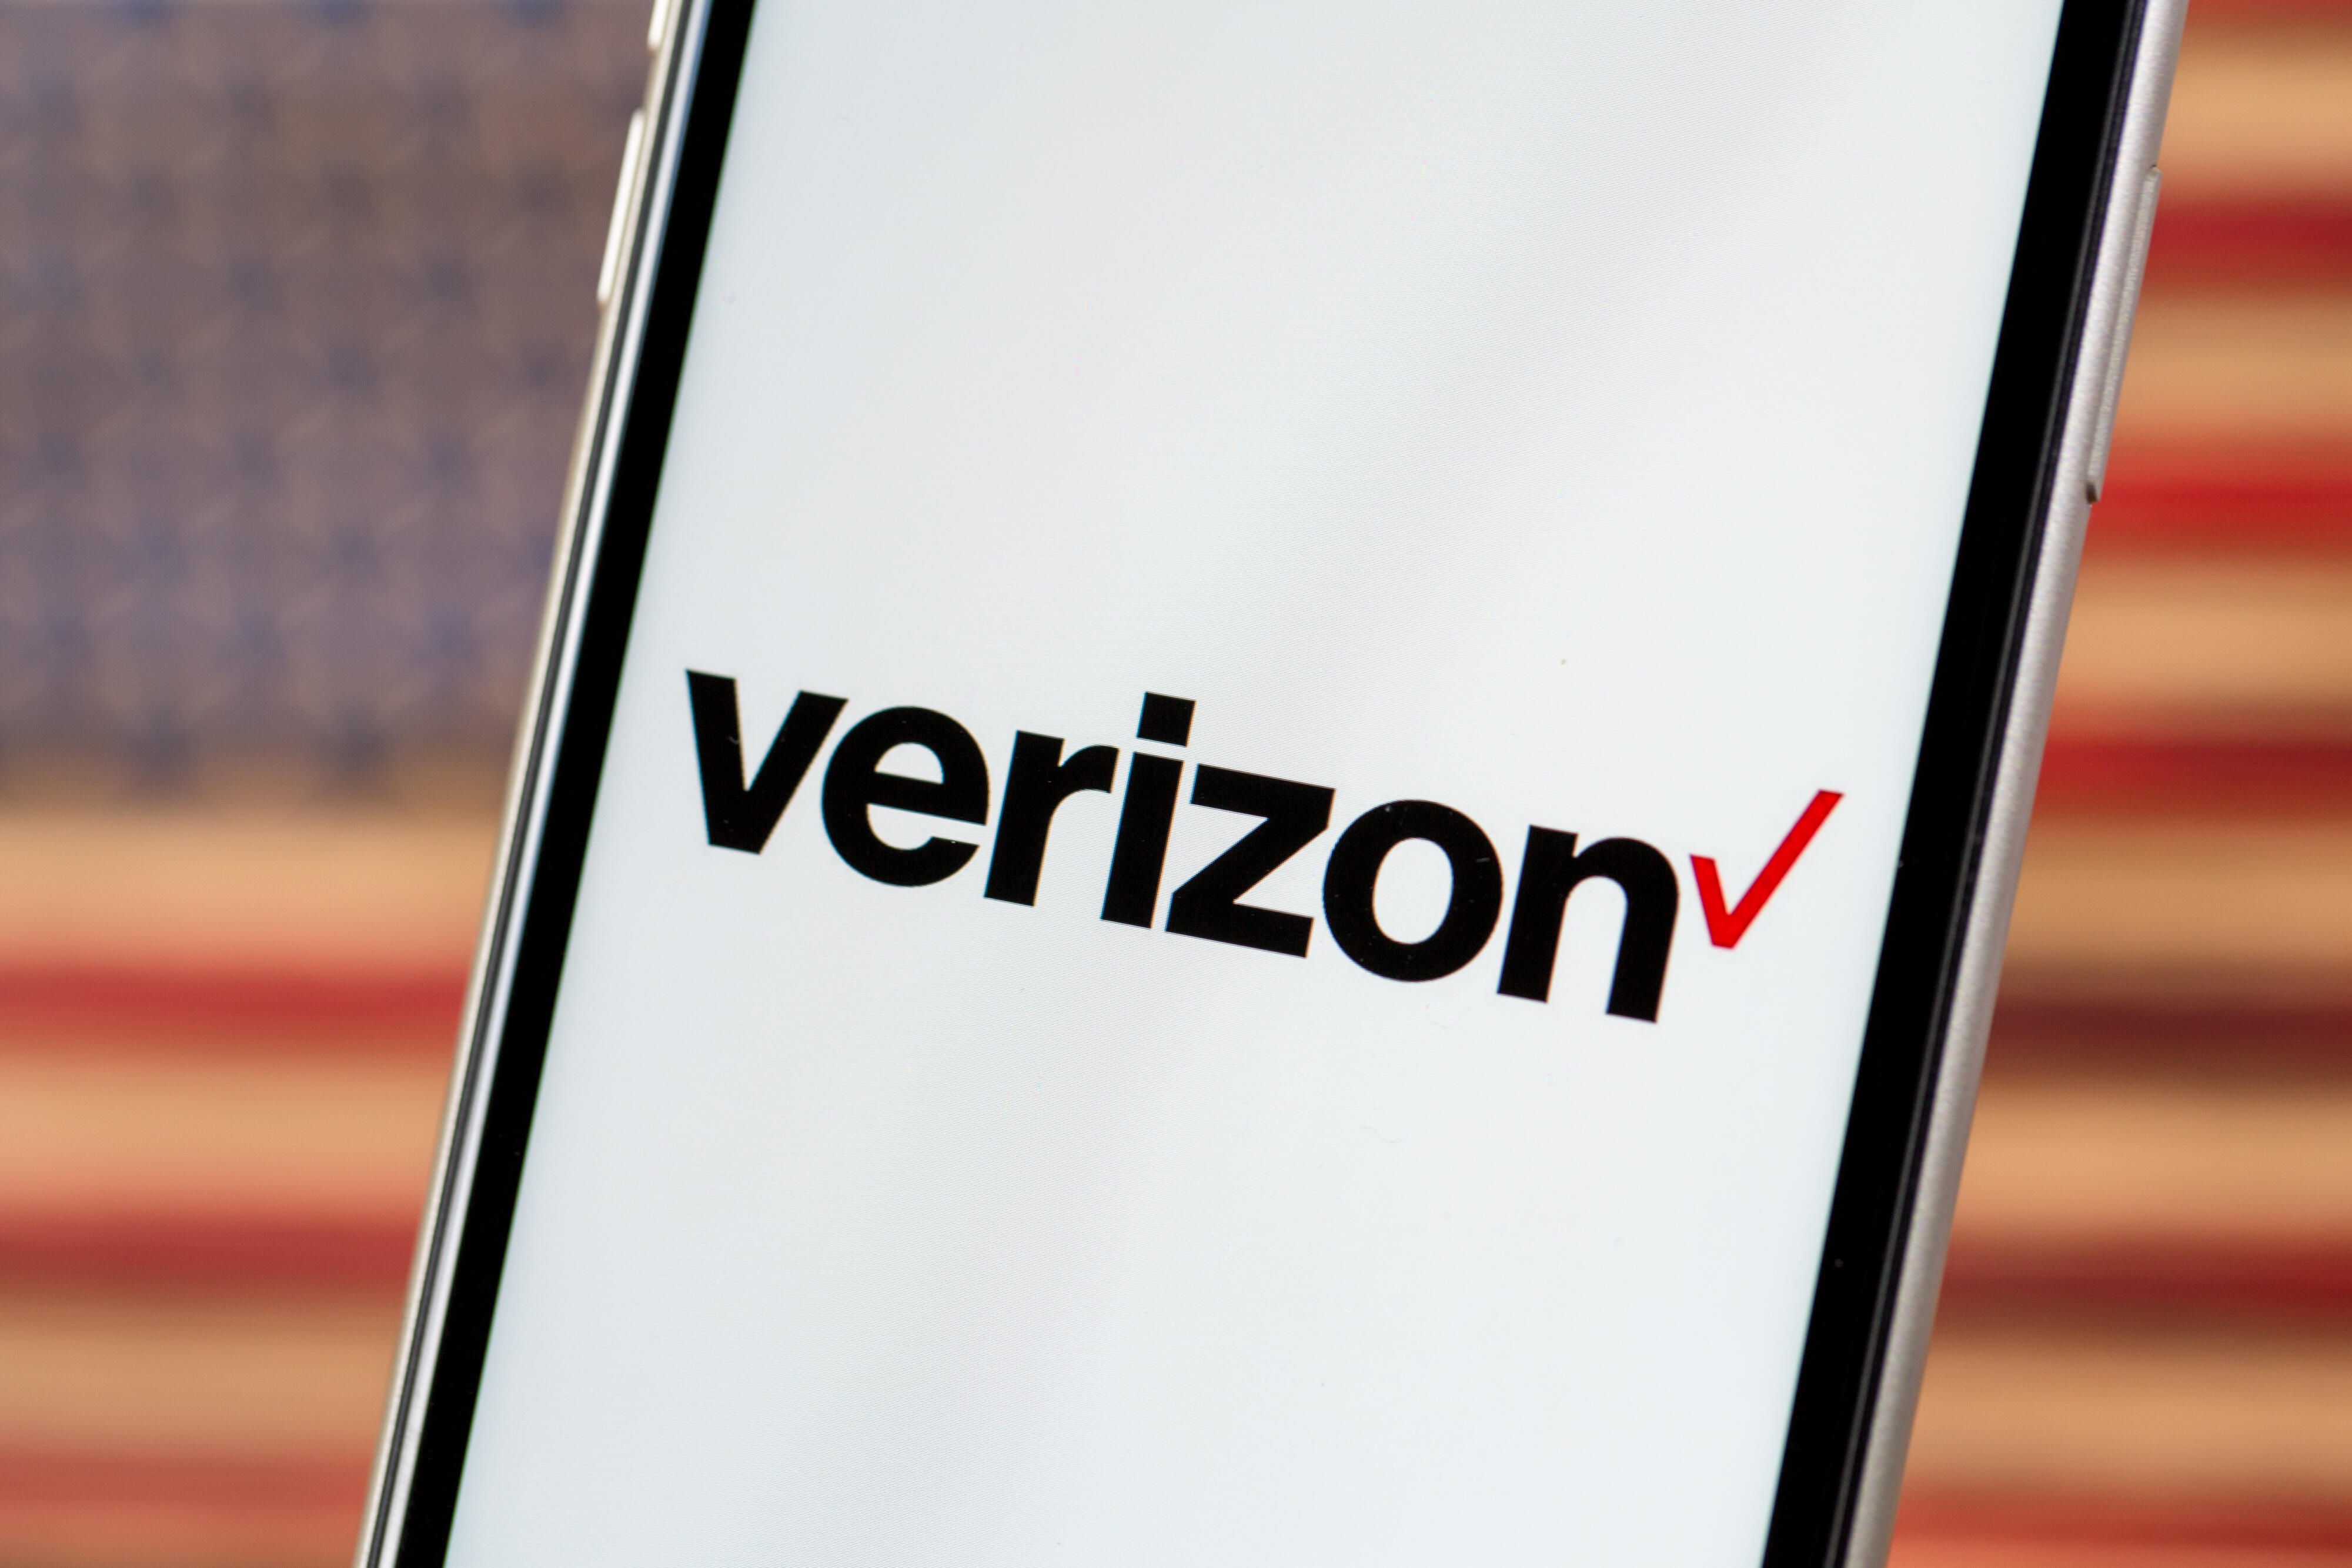 verizon-logo-phone-7153